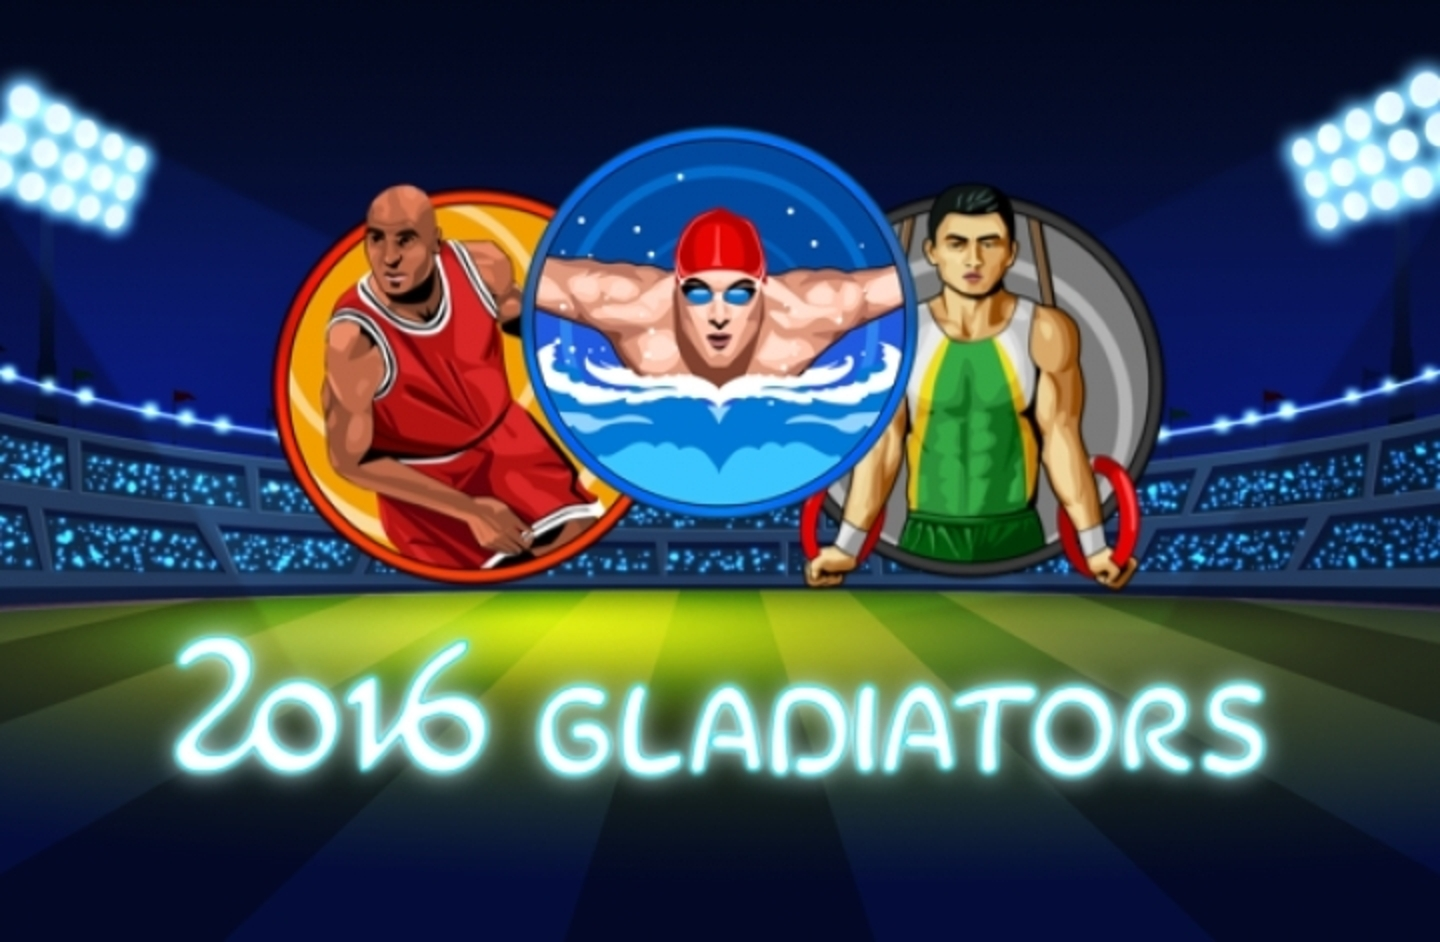 The 2016 Gladiators Online Slot Demo Game by Endorphina